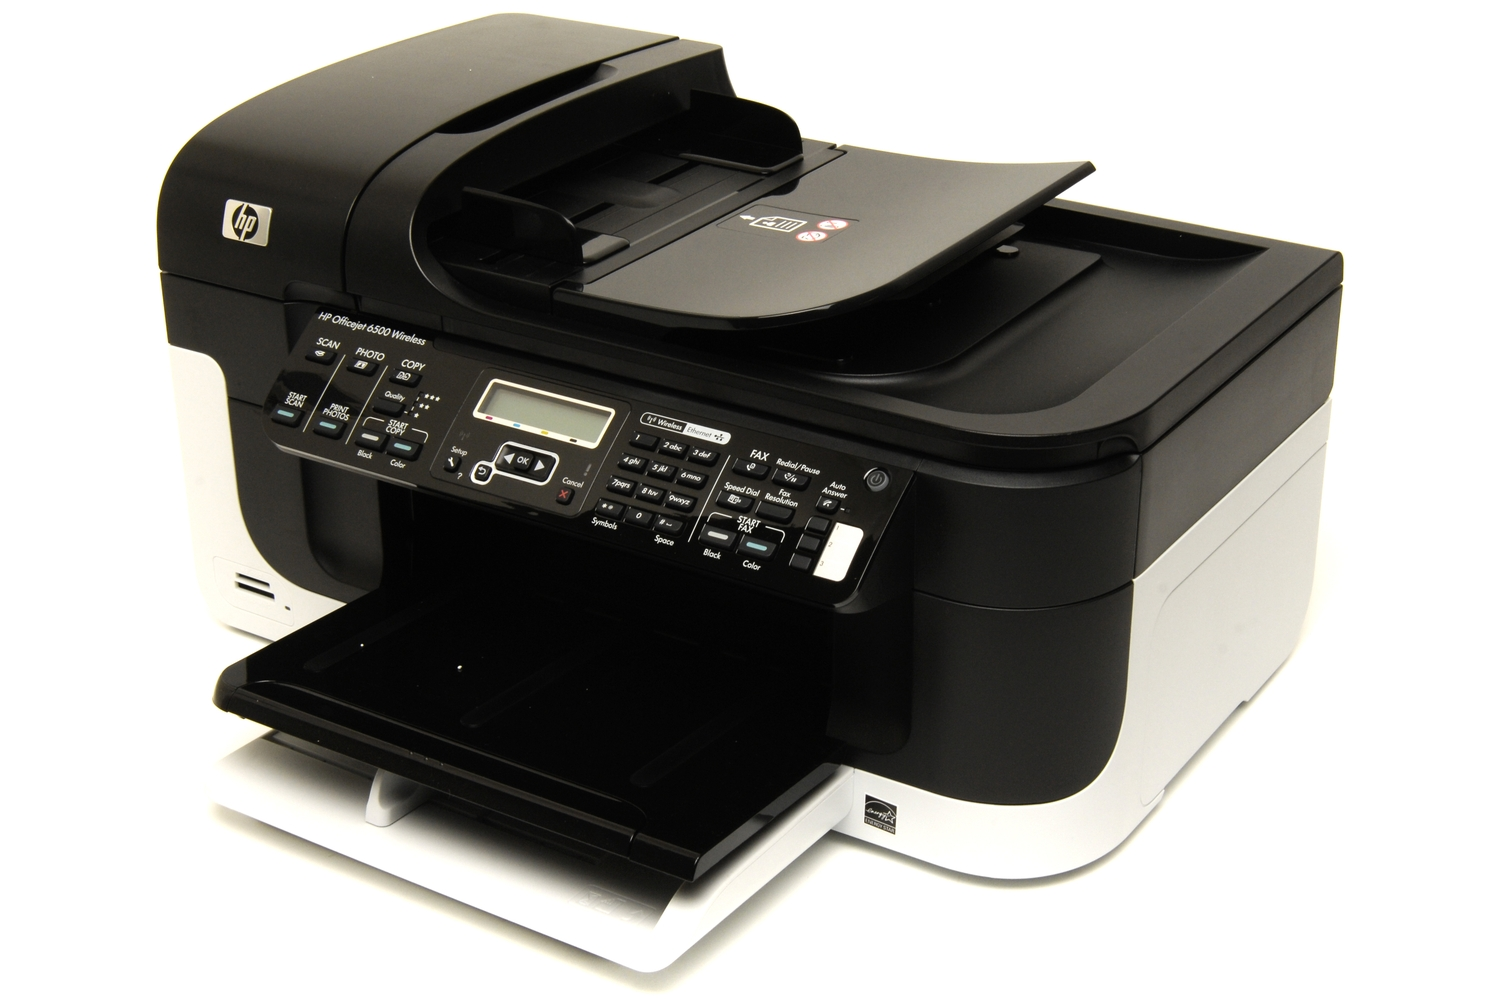 hp officejet 7310 all in one printer manual professional user rh gogradresumes com HP Officejet 6500 Ink hp officejet pro 6500a plus manual